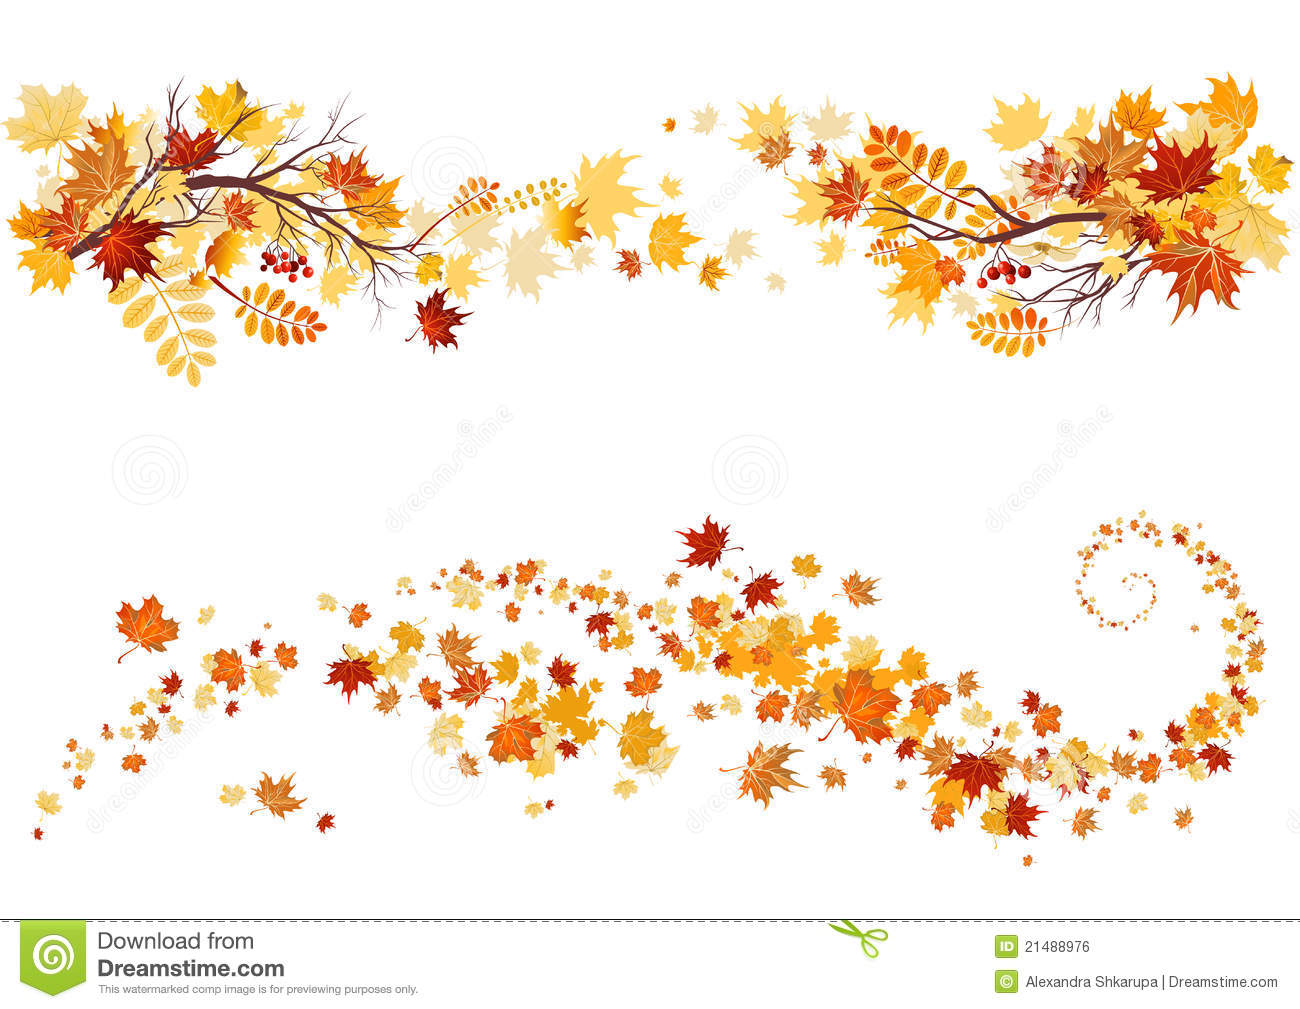 Falling Leaves Banner Clipart.